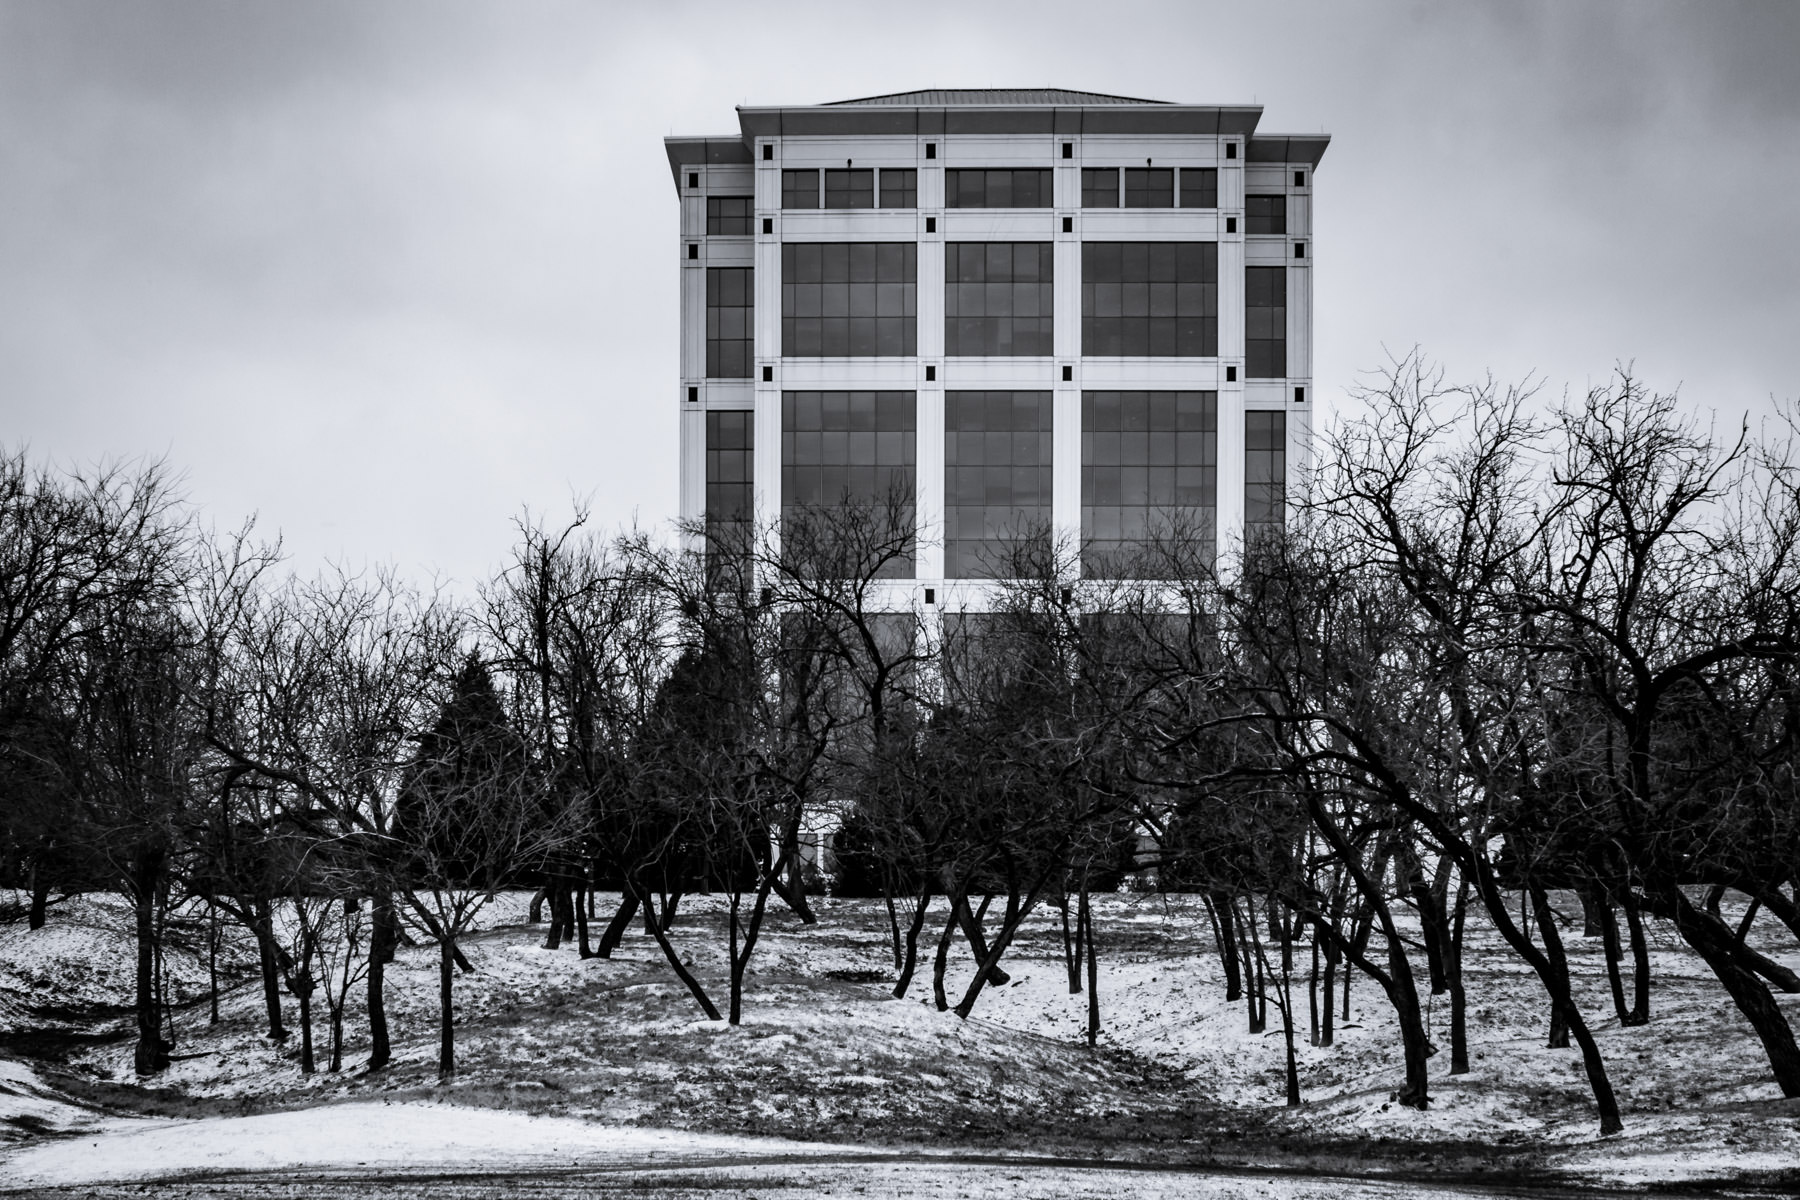 Spotted after a light snowfall in Las Colinas, Irving, Texas.